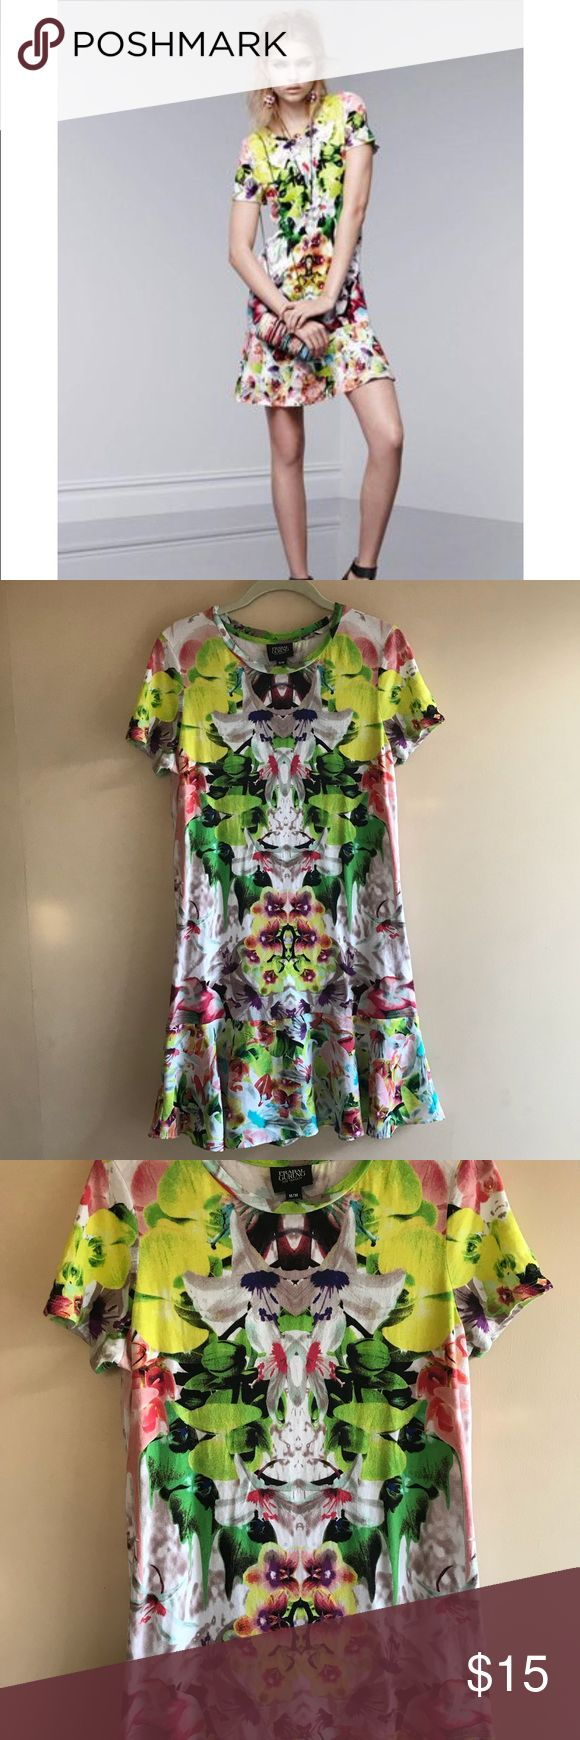 EUC Prabal Gurung Dress for Target sz M EUC Prabal Gurung Dress for Target sz M.  No flaws noted.   T-shirt like material on top and skirt is almost a chiffon material.   Very stretchy. Prabal Gurung for Target Dresses Midi